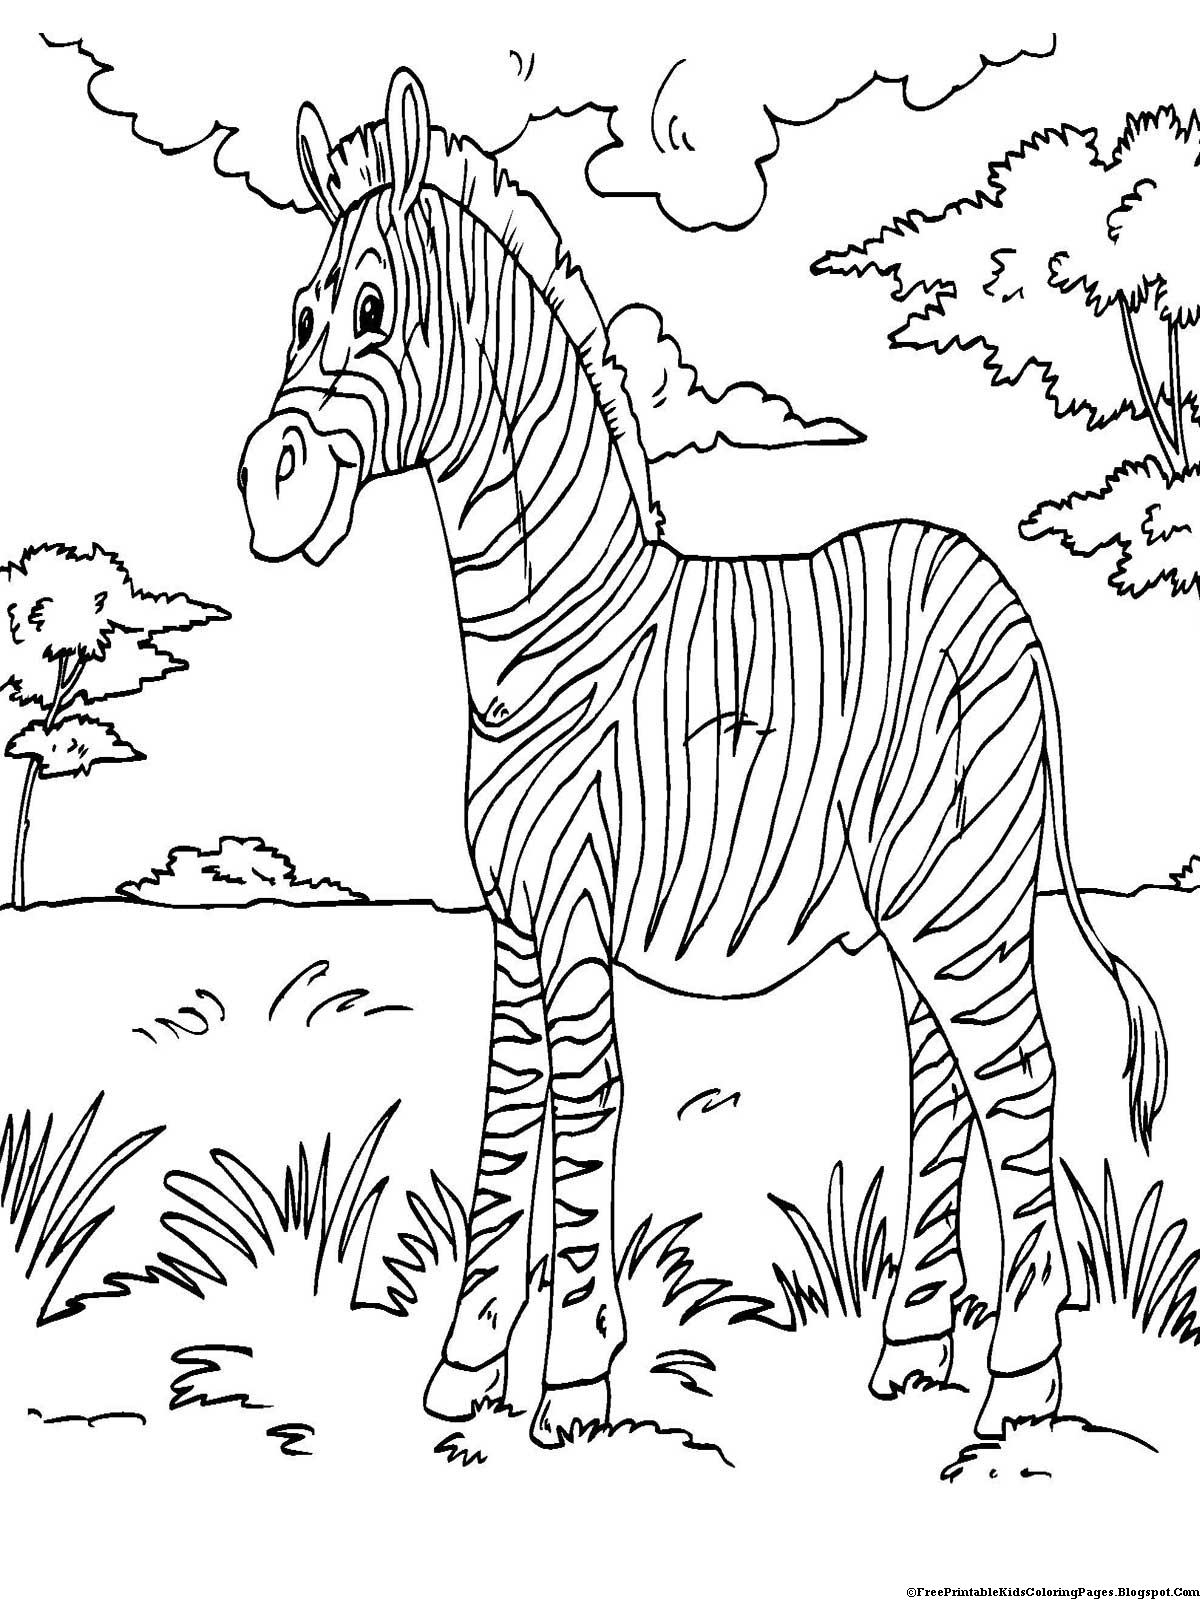 coloring pictures of animals adult coloring pages animals best coloring pages for kids pictures animals coloring of